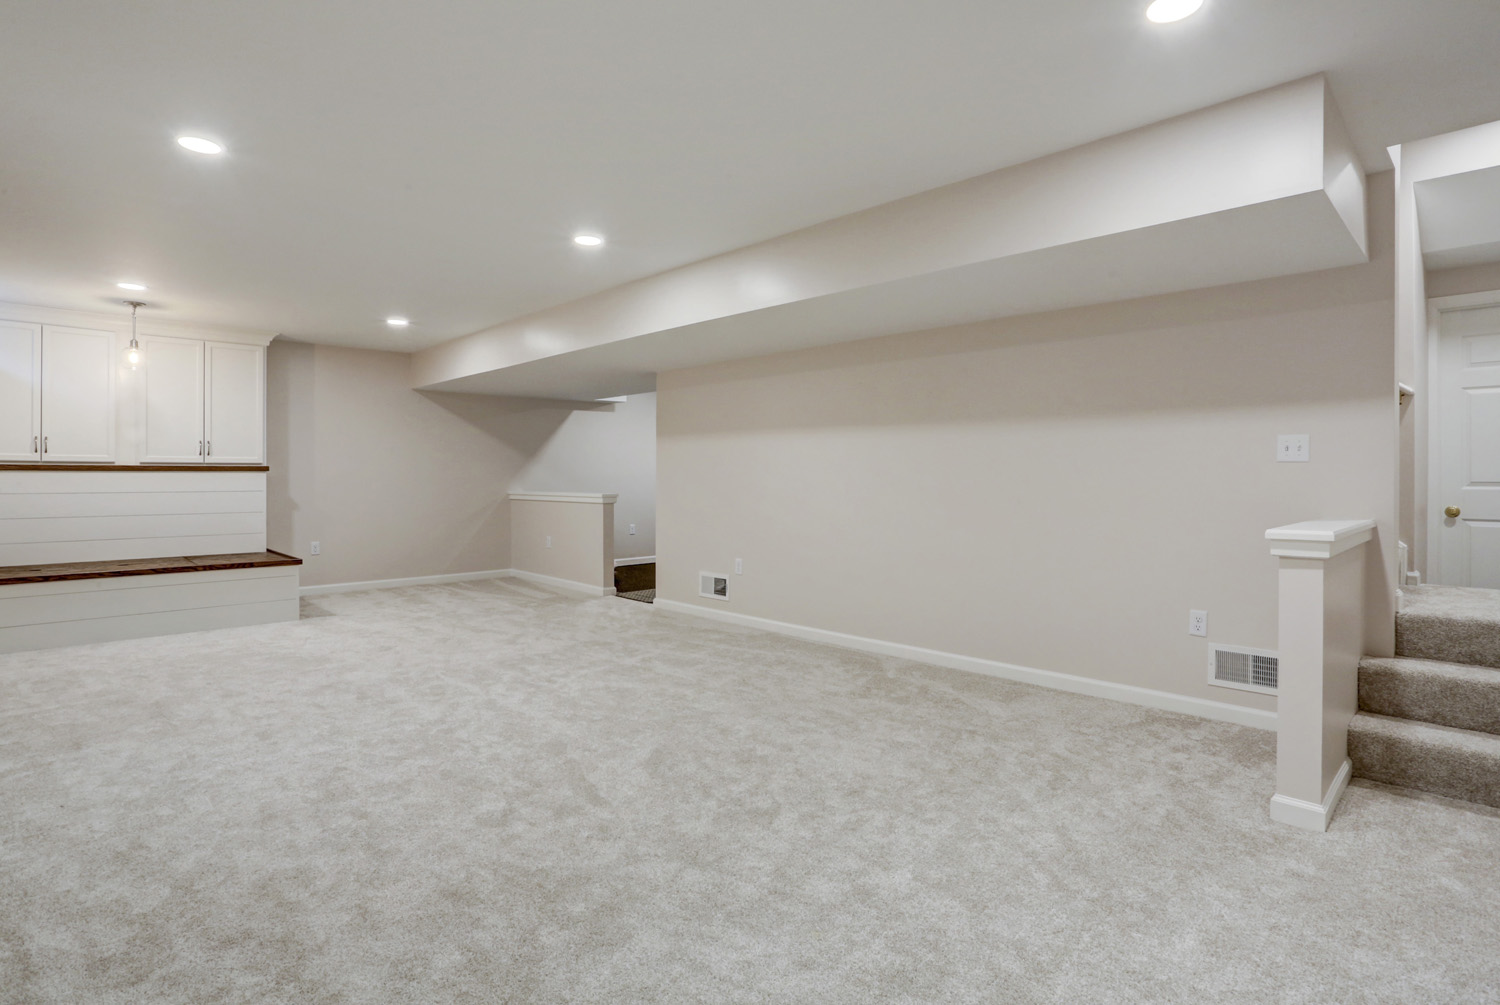 Large play room in Millersville finished basement remodel